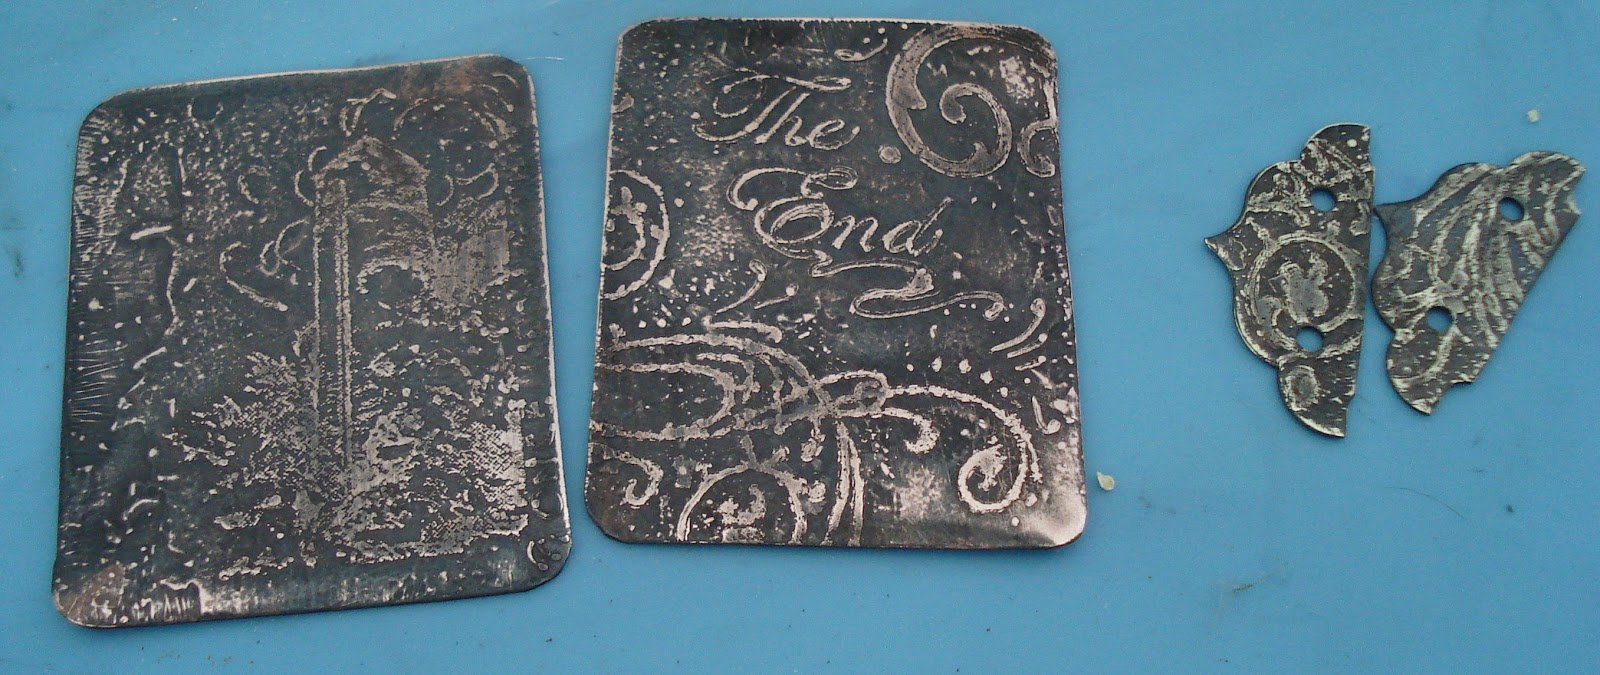 Mini Book Tutorial Metal Etched Cover Option My Stuff Life Etch Your Circuit Boards This Simple Diy Recipe Uses Common Household To Preserve The Patina And Add A Nicer Finish When You Are Satisfied With Finished Piece Looks Rub On Some Renaissance Wax Allow Sit For Several